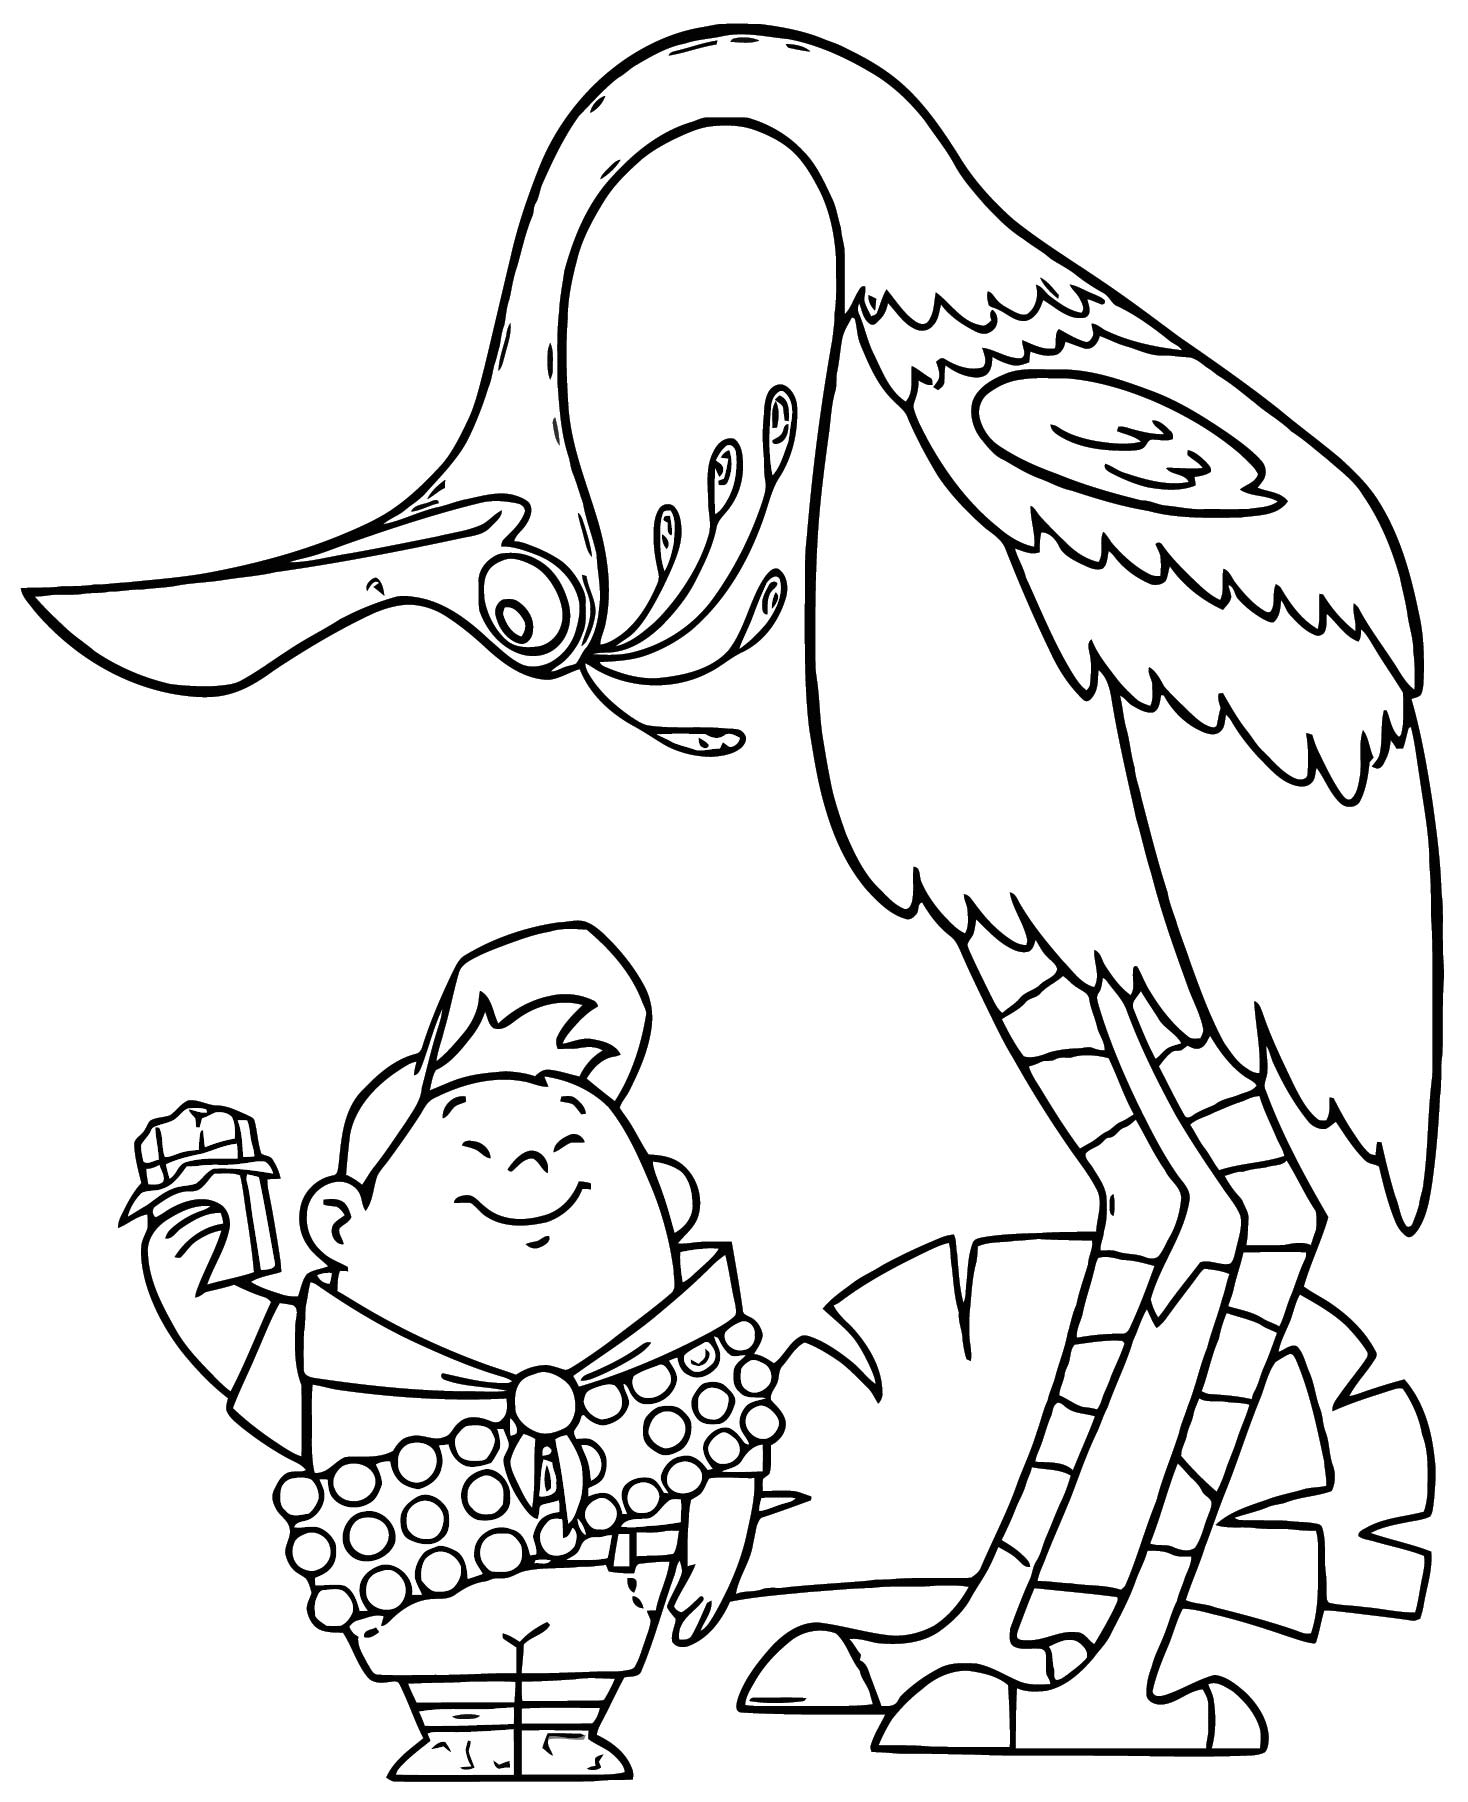 Disney Pixar Up Coloring Pages 04